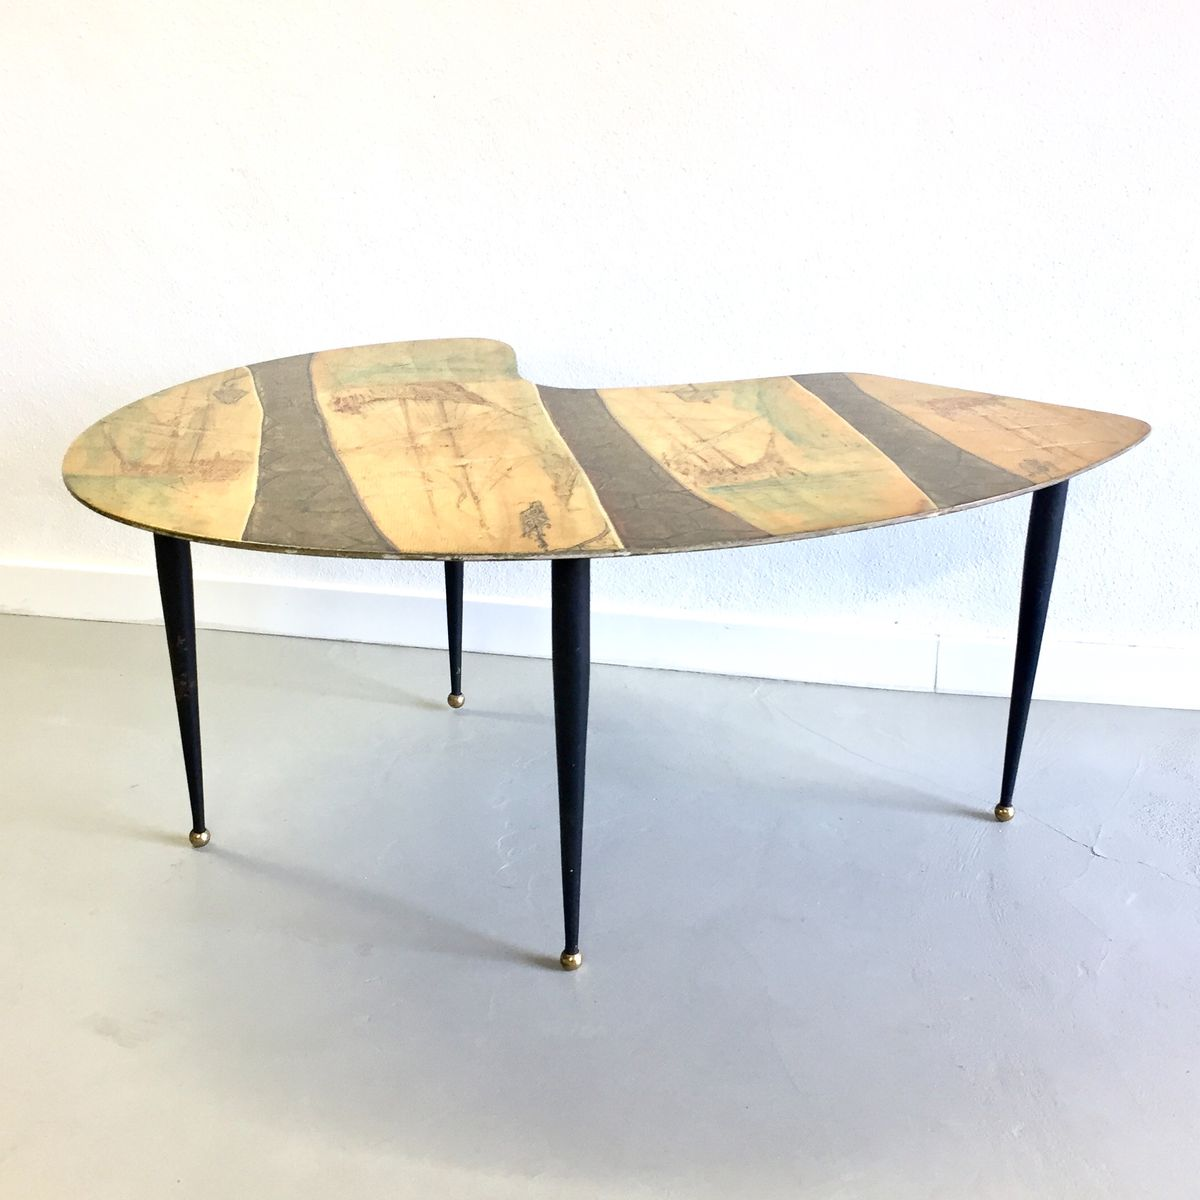 table basse mid century de cumino italie 1950s en vente sur pamono. Black Bedroom Furniture Sets. Home Design Ideas